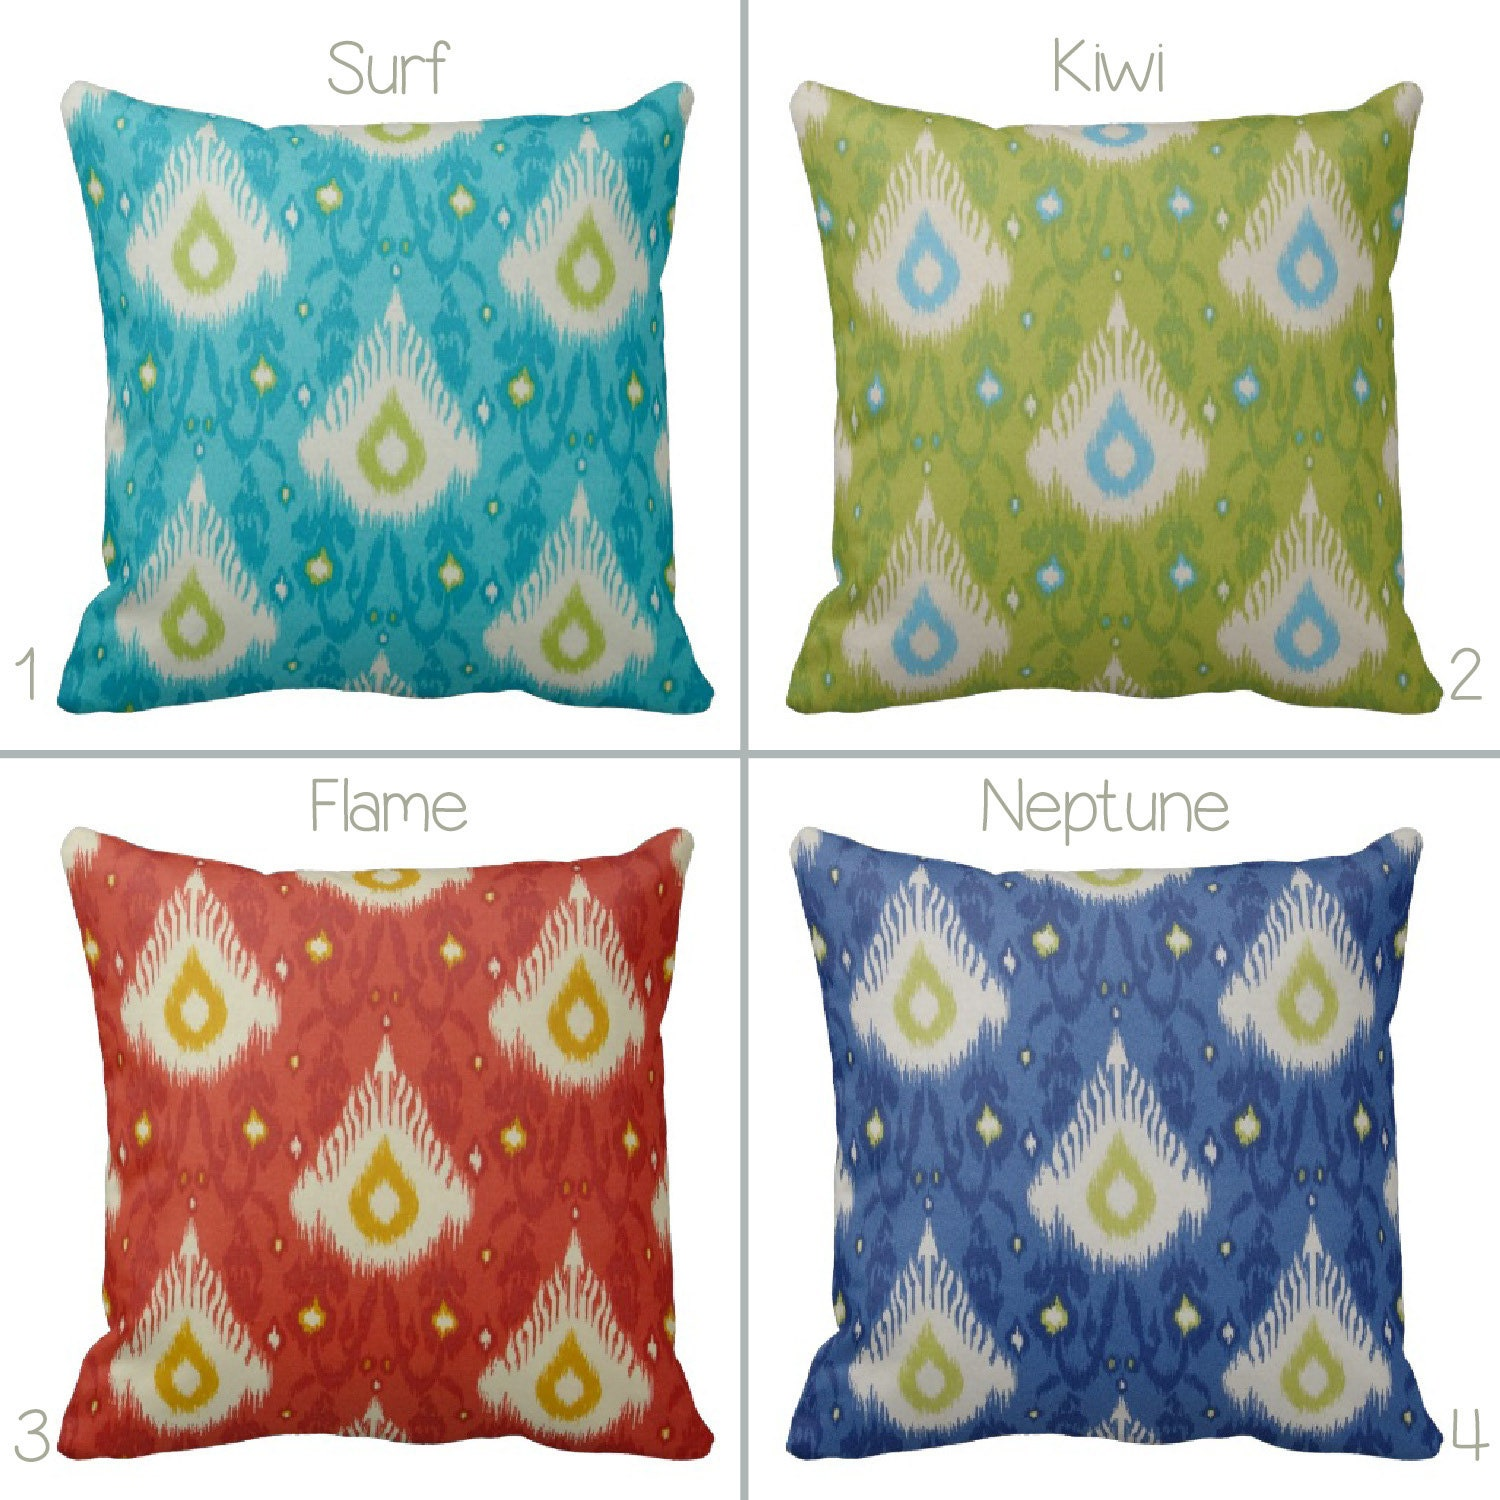 How To Make Zippered Throw Pillow Covers : Zippered OUTDOOR Ikat Throw Pillow Cover Teal Lime Green Red